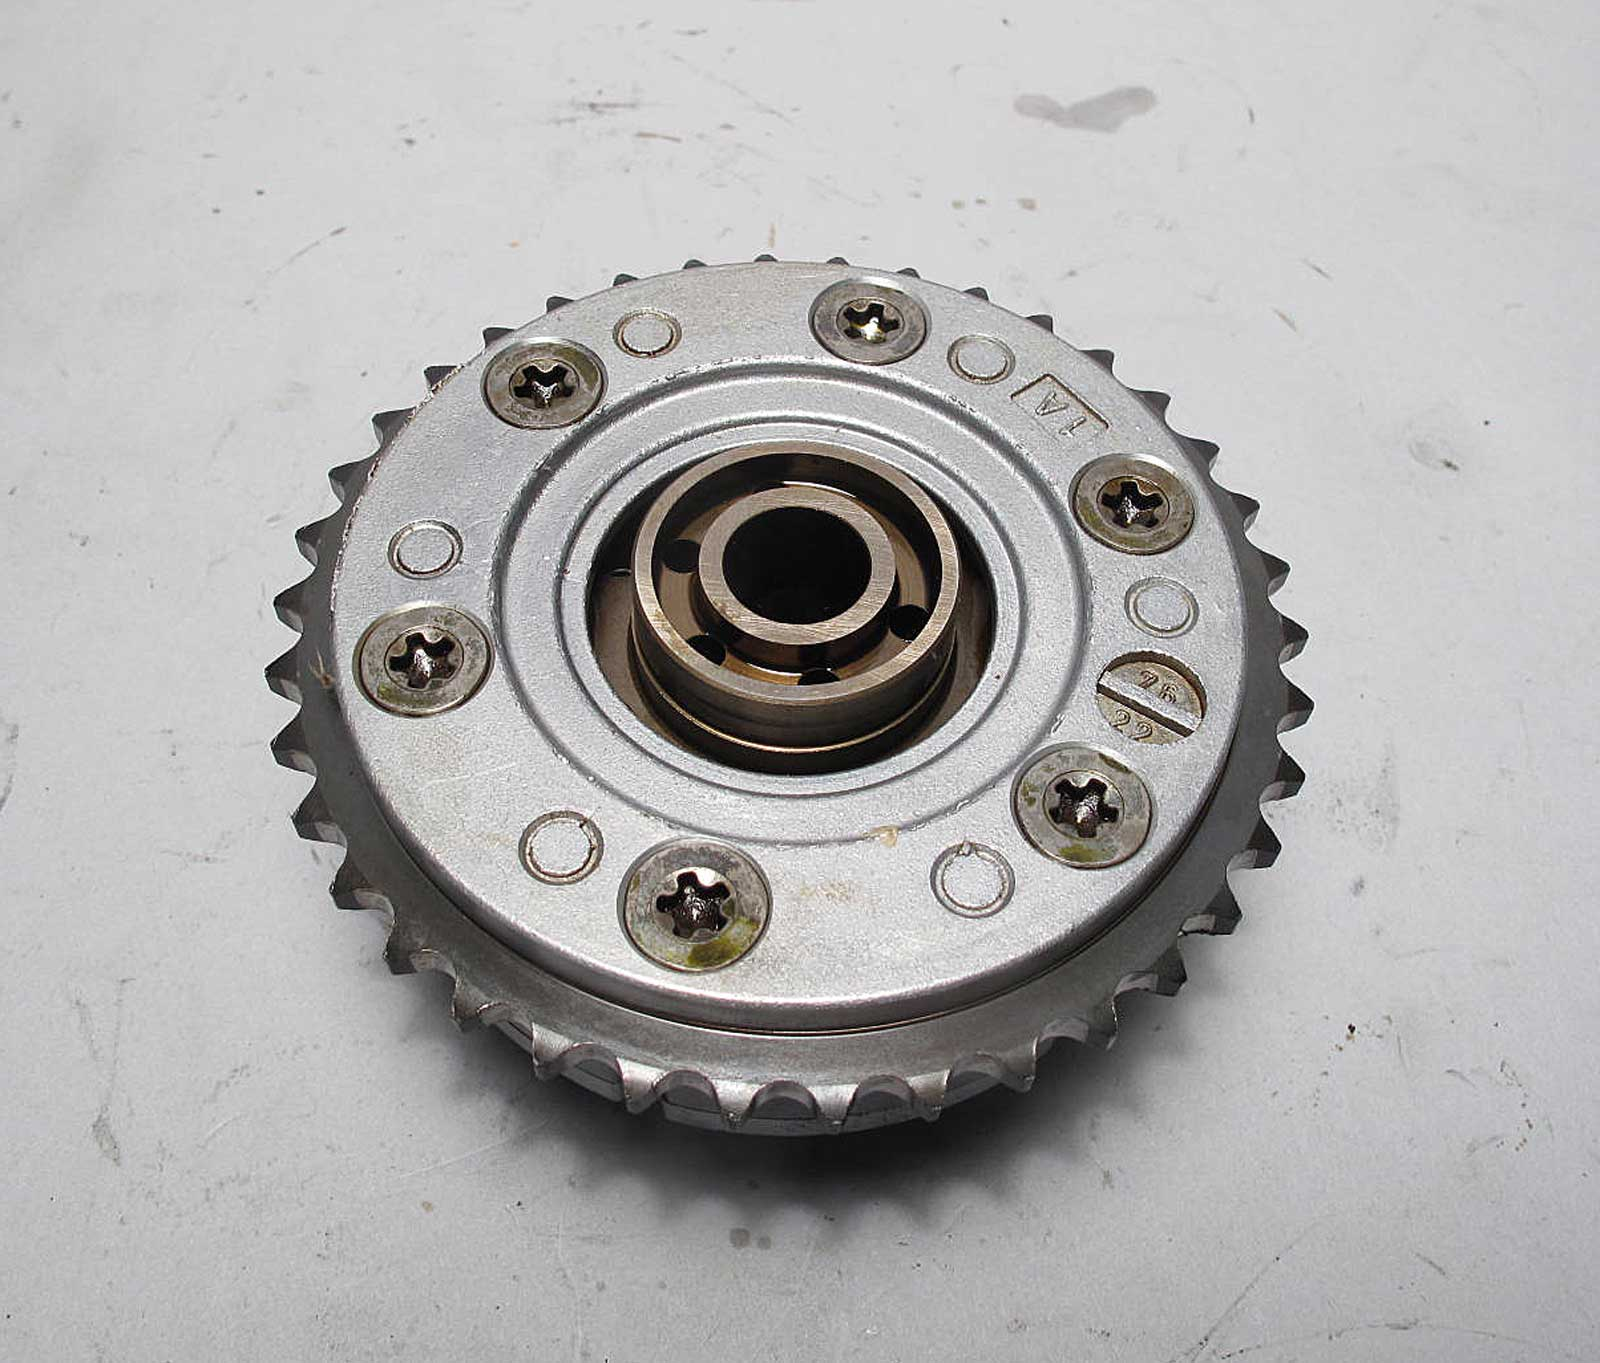 BMW N54 3.0L 6-Cyl Twin Turbo Exhaust Camshaft Timing Gear